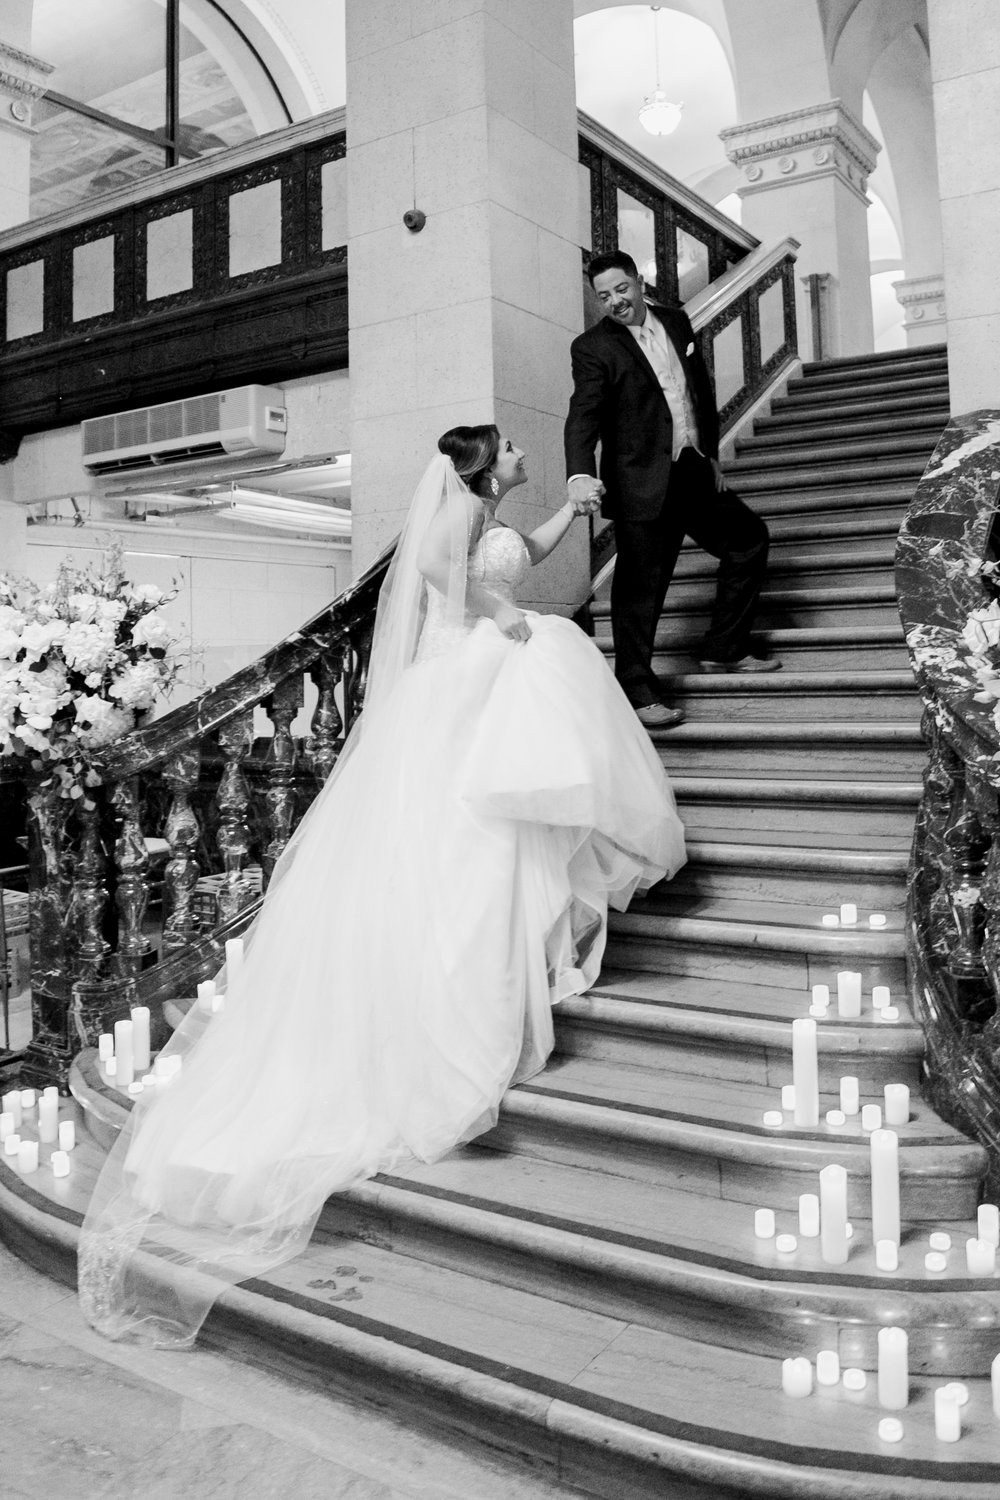 bride and groom portrait on candle lit staircase